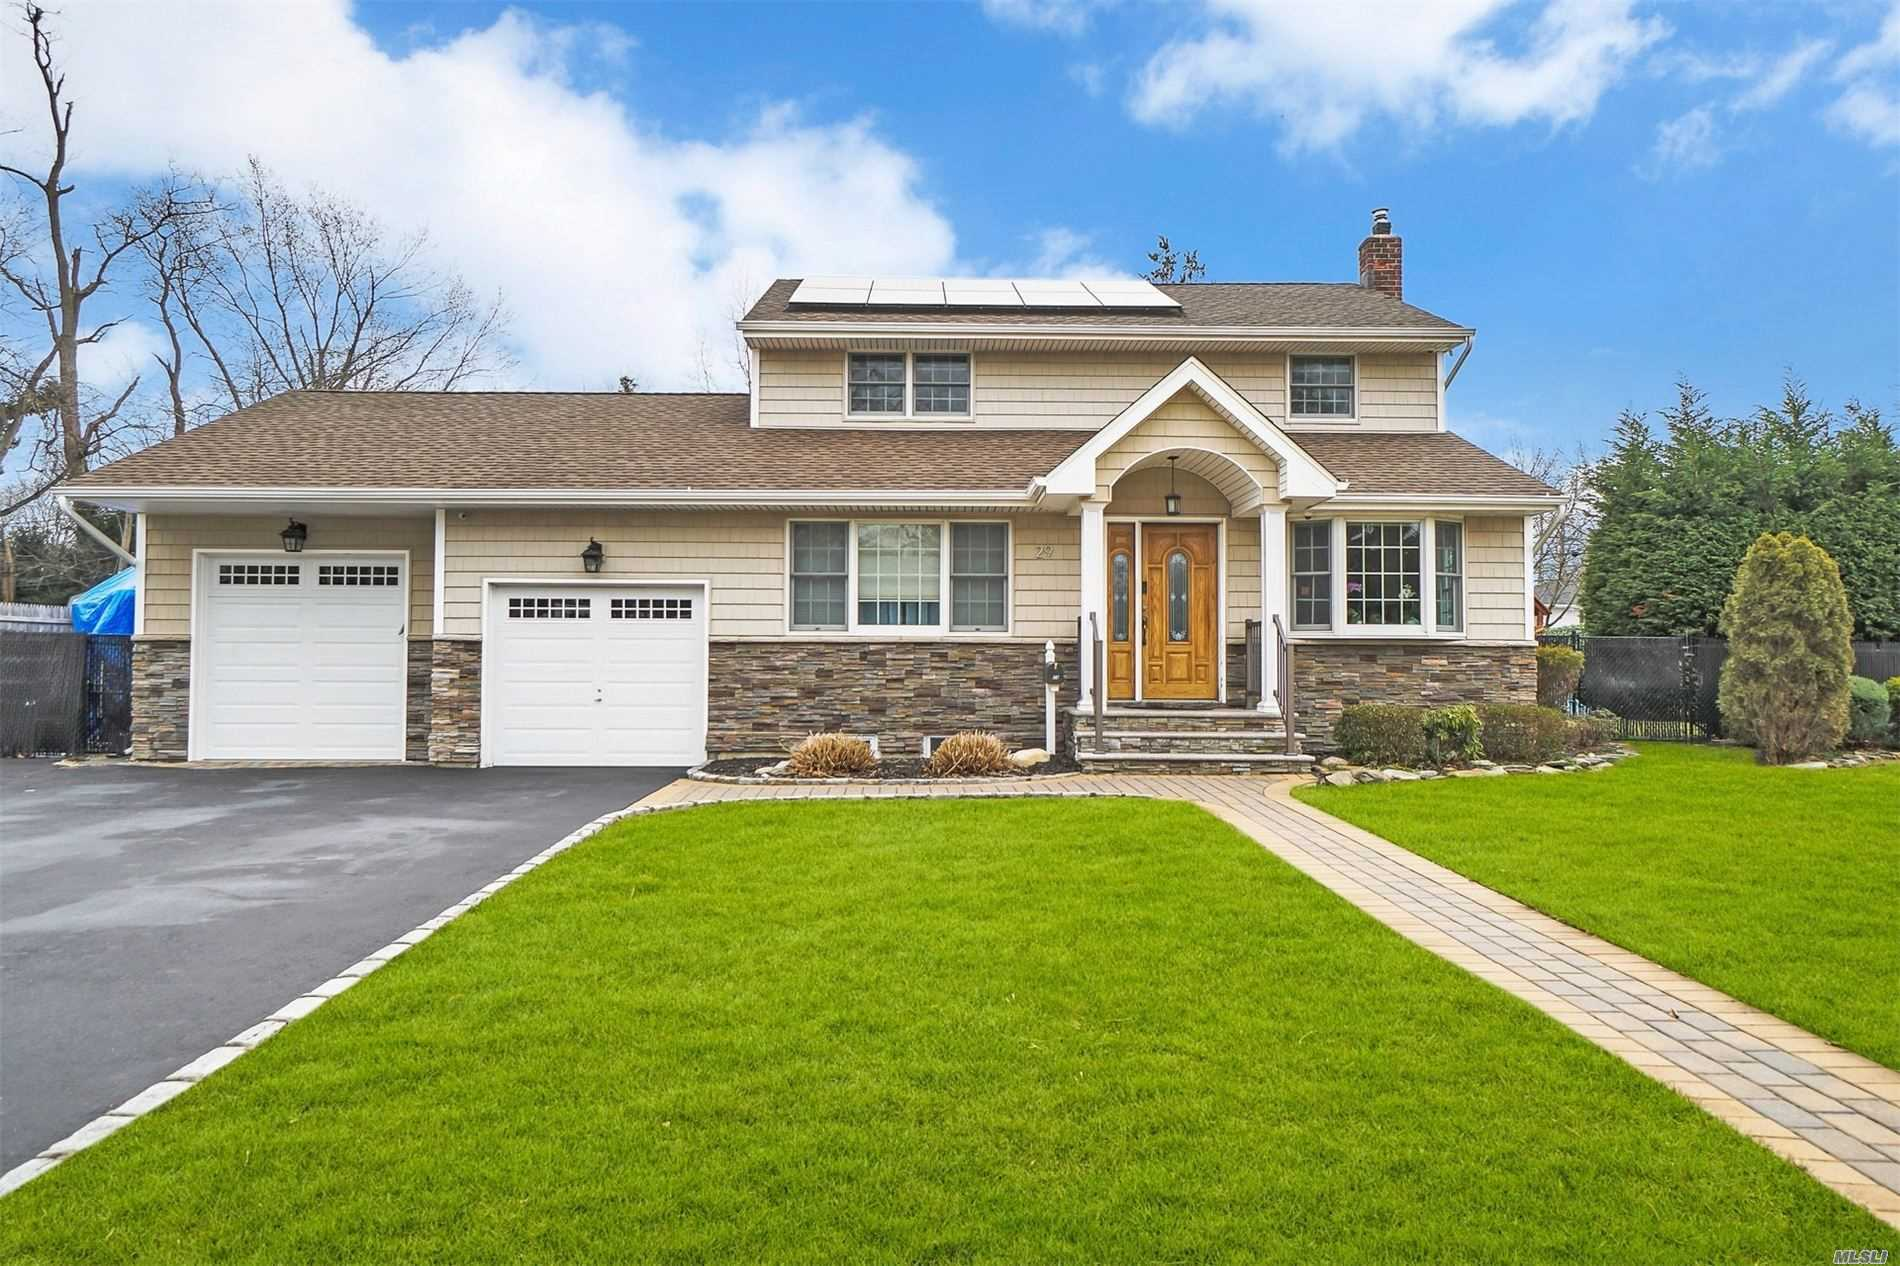 29 Marie Cres - Commack, New York